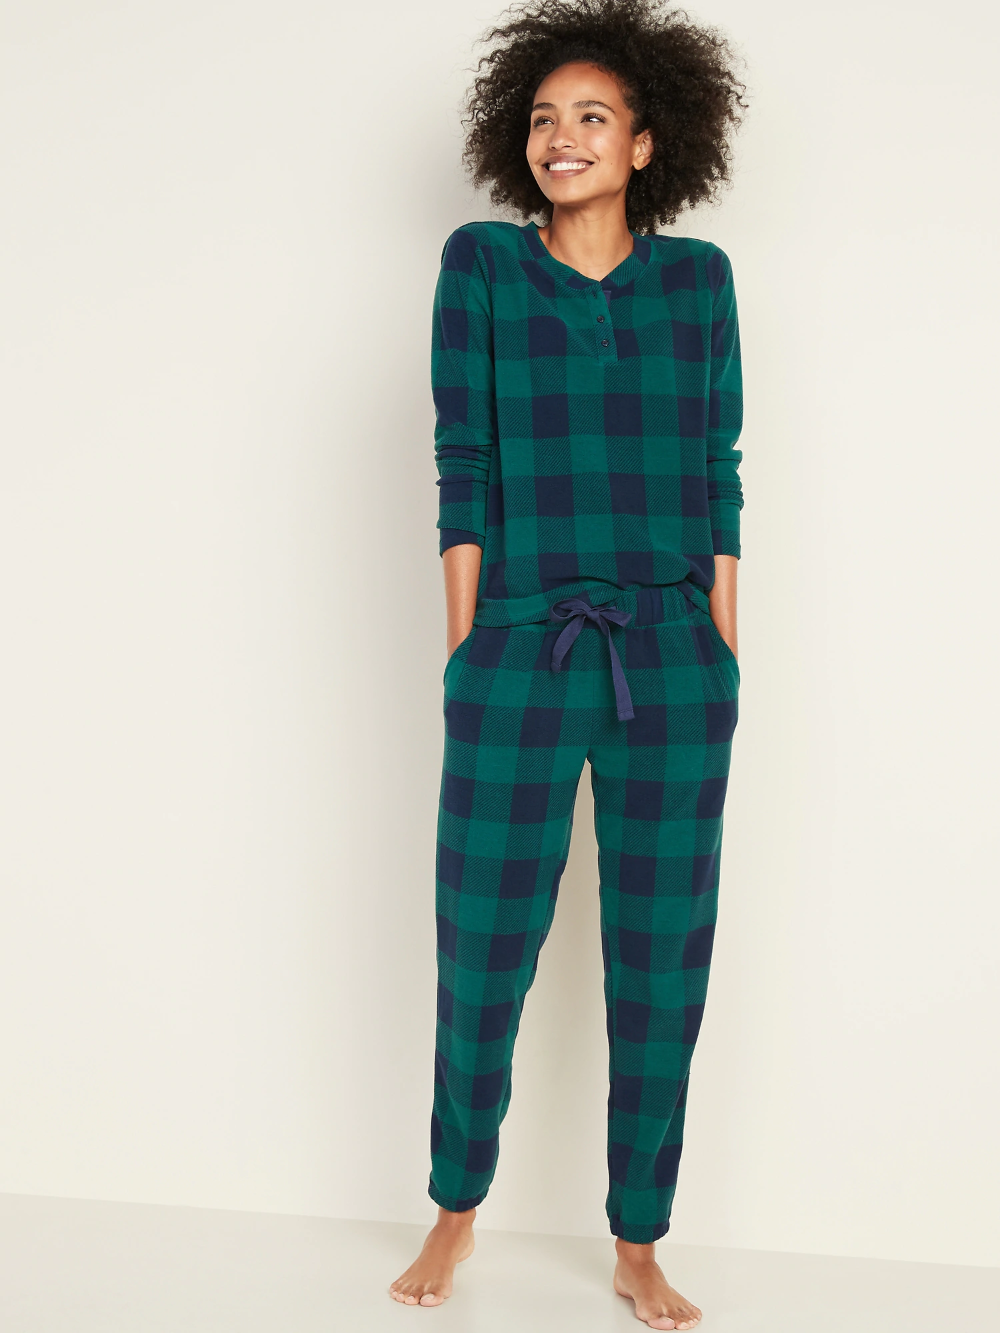 Large Micro Performance Fleece Pajama Set for Women Old